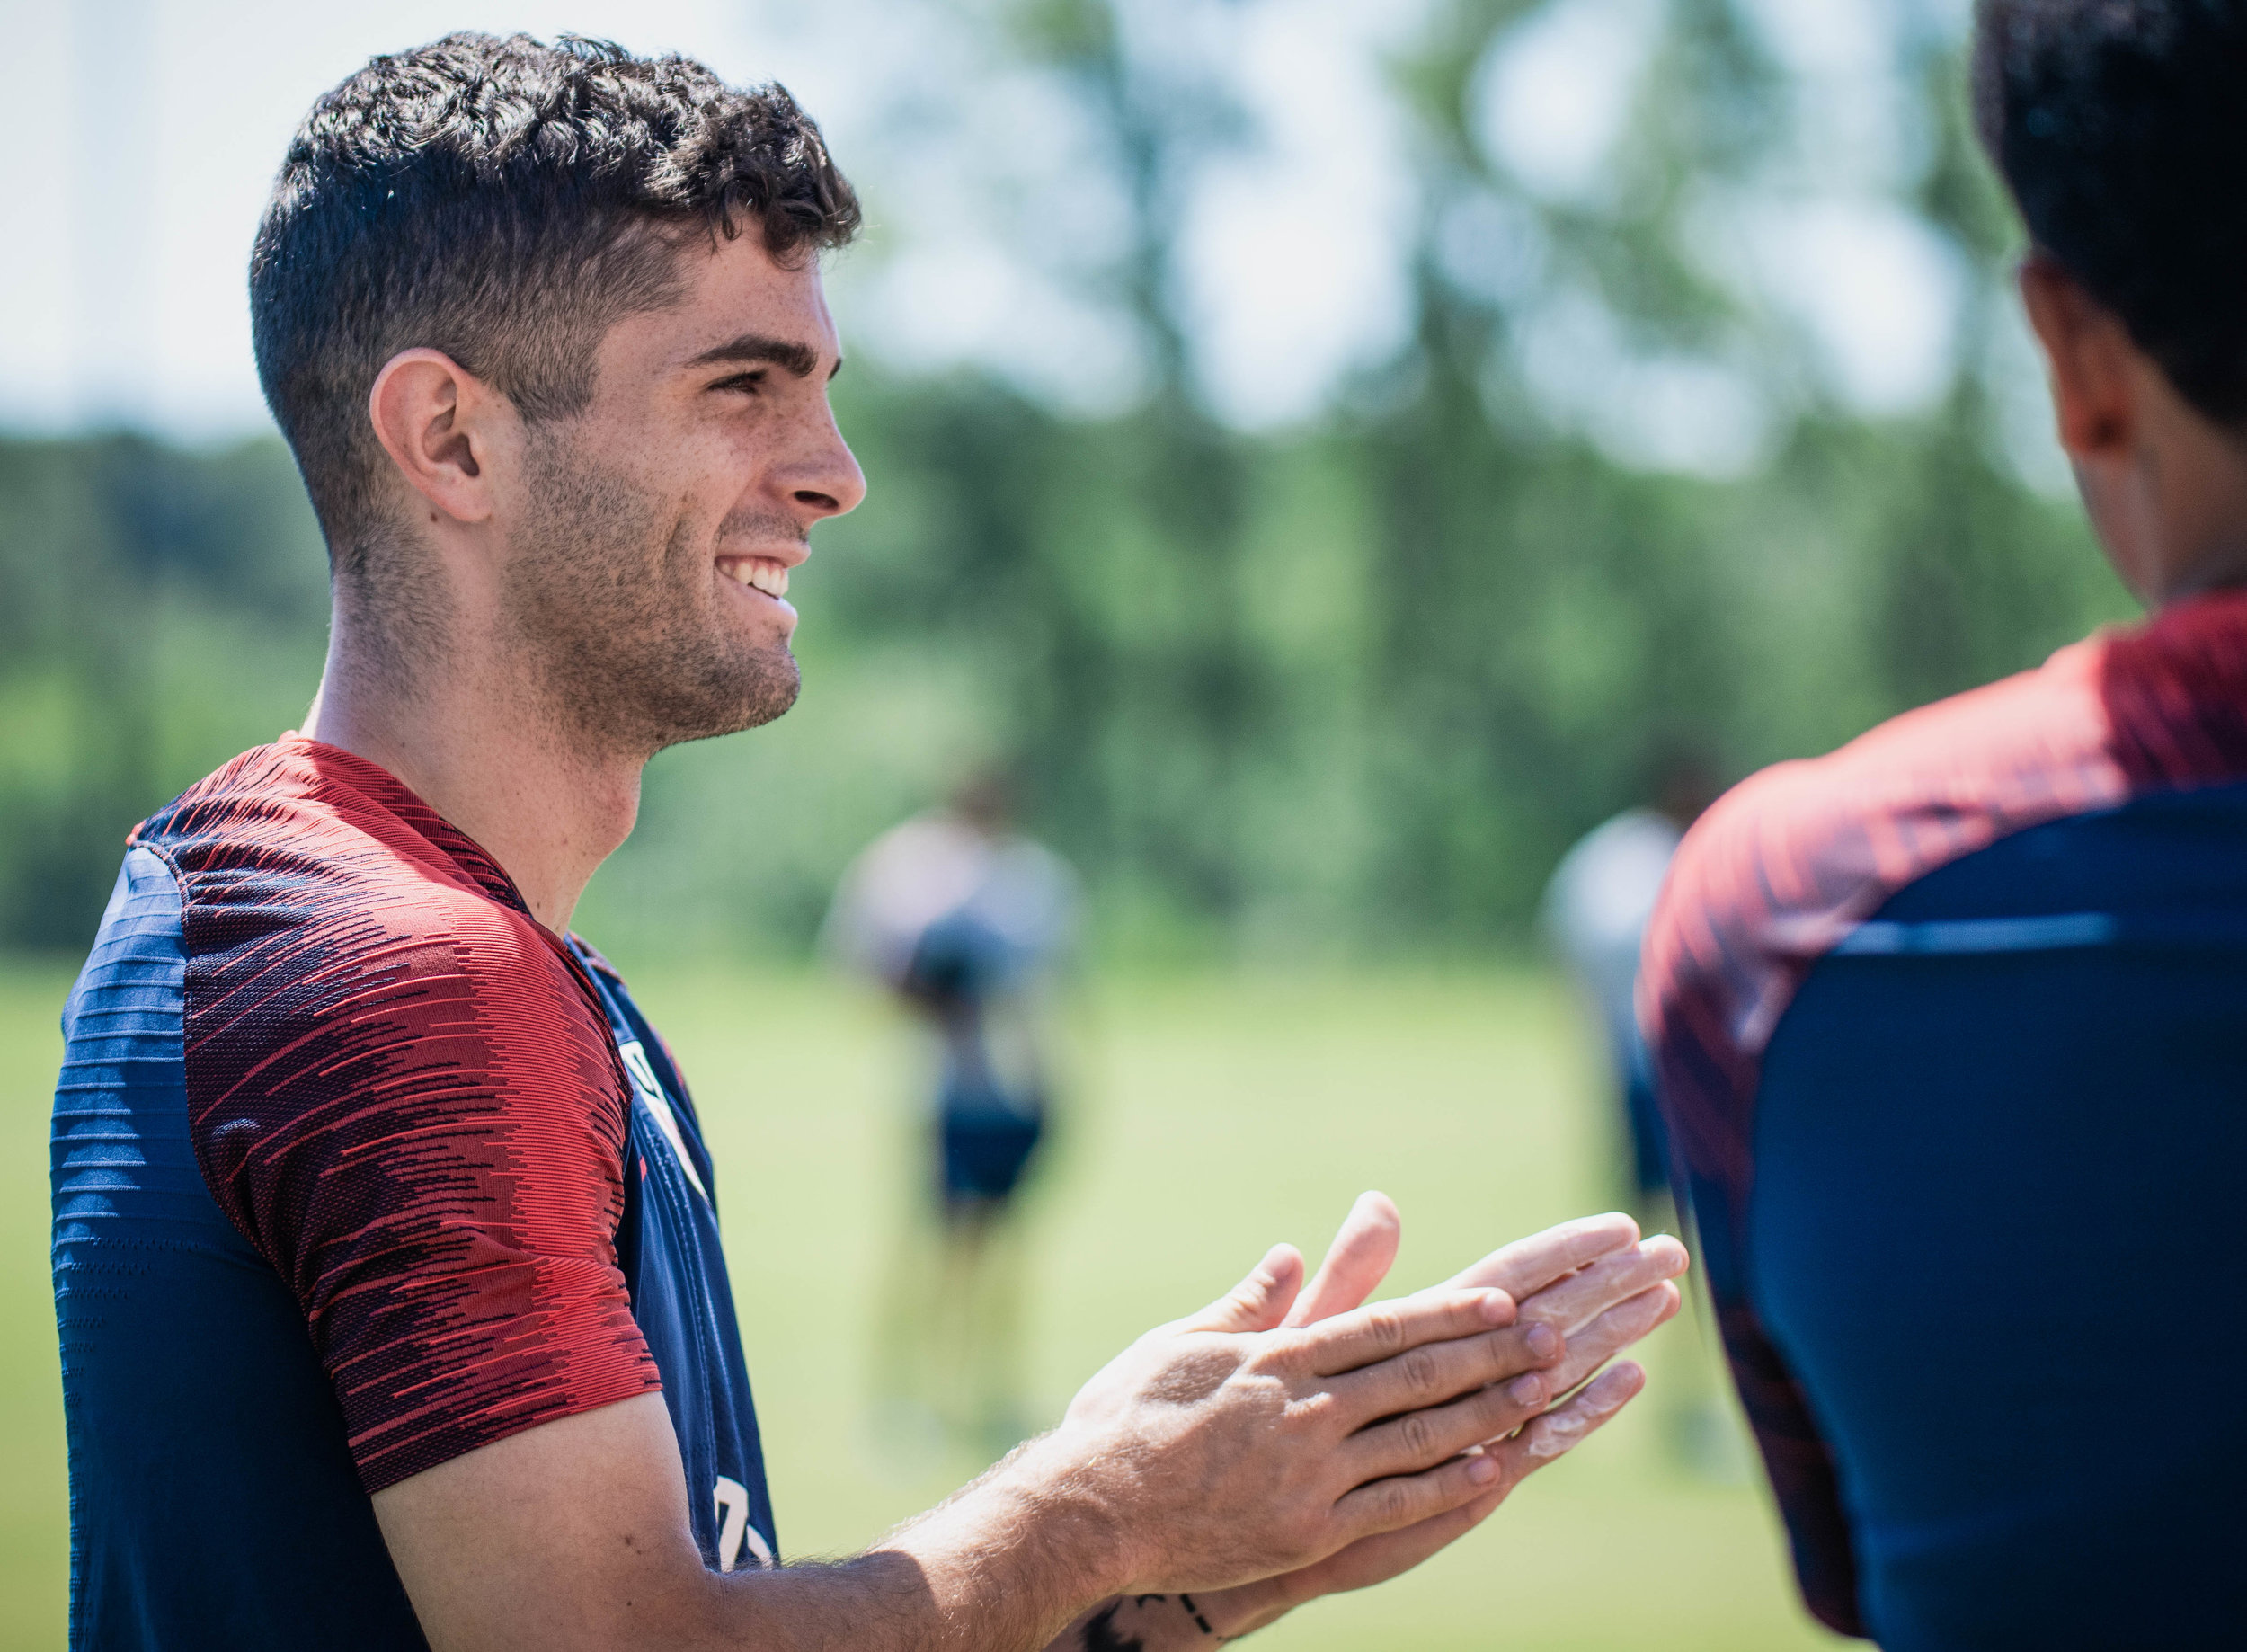 Christian Pulisic puts on sunscreen during the U.S. Men's National Team, Gold Cup training session on Tuesday, June 25, 2019 at Pinnacle National Development Center in Kansas City, Kansas. The U.S. Men's National Team will face off with Panama in the team's final group stage match of the Gold Cup. | Photo by: Noah Riffe